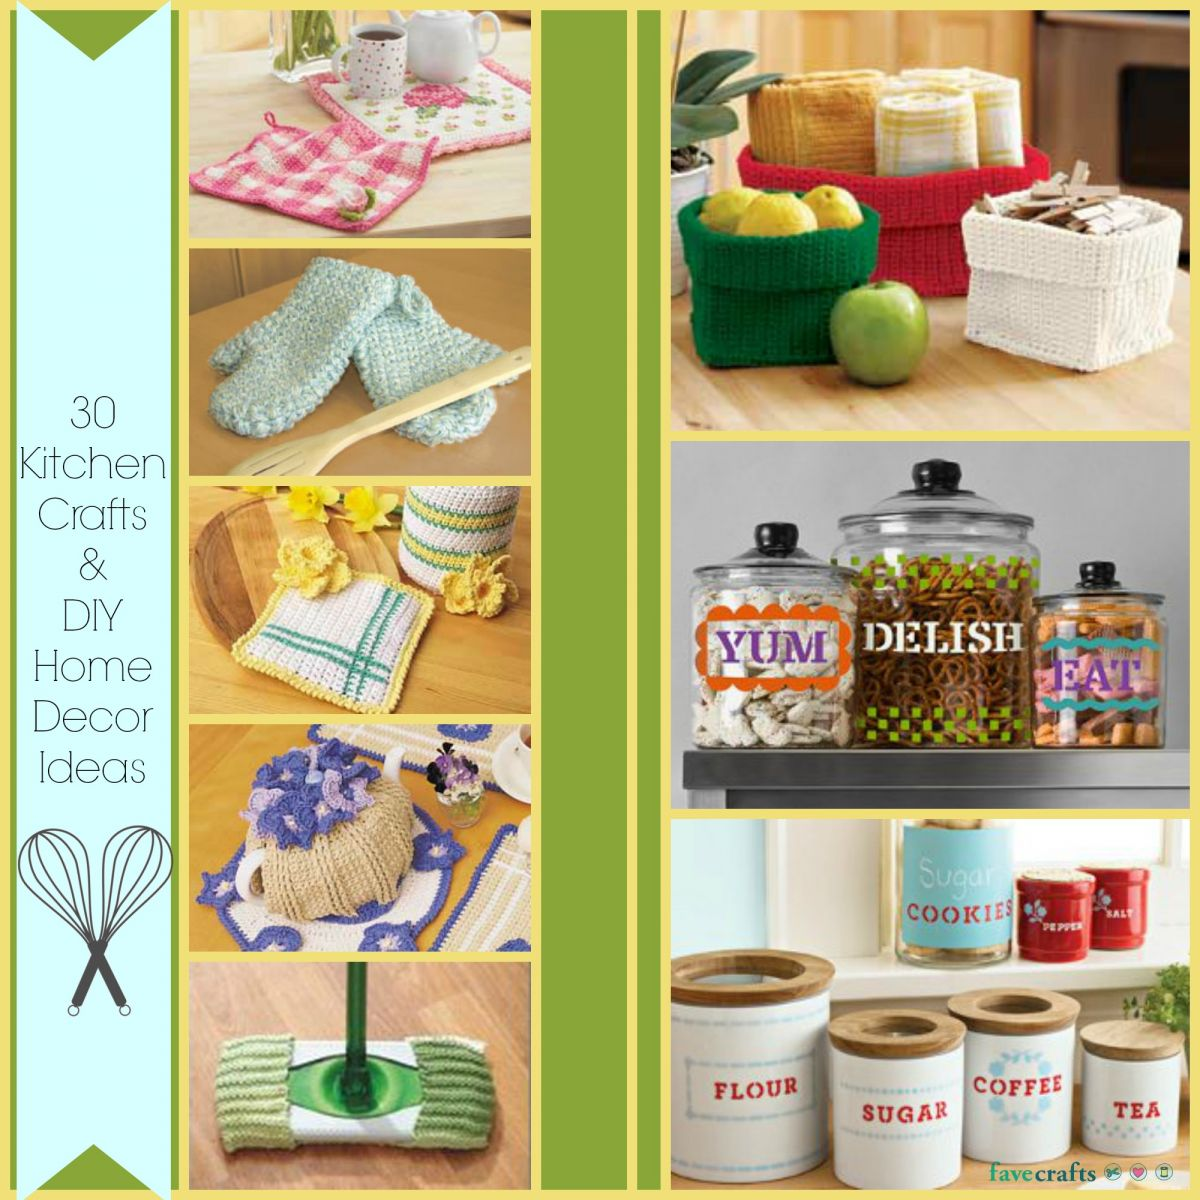 30 Kitchen Crafts And Diy Home Decor Ideas Favecrafts within Craft Ideas Kitchen